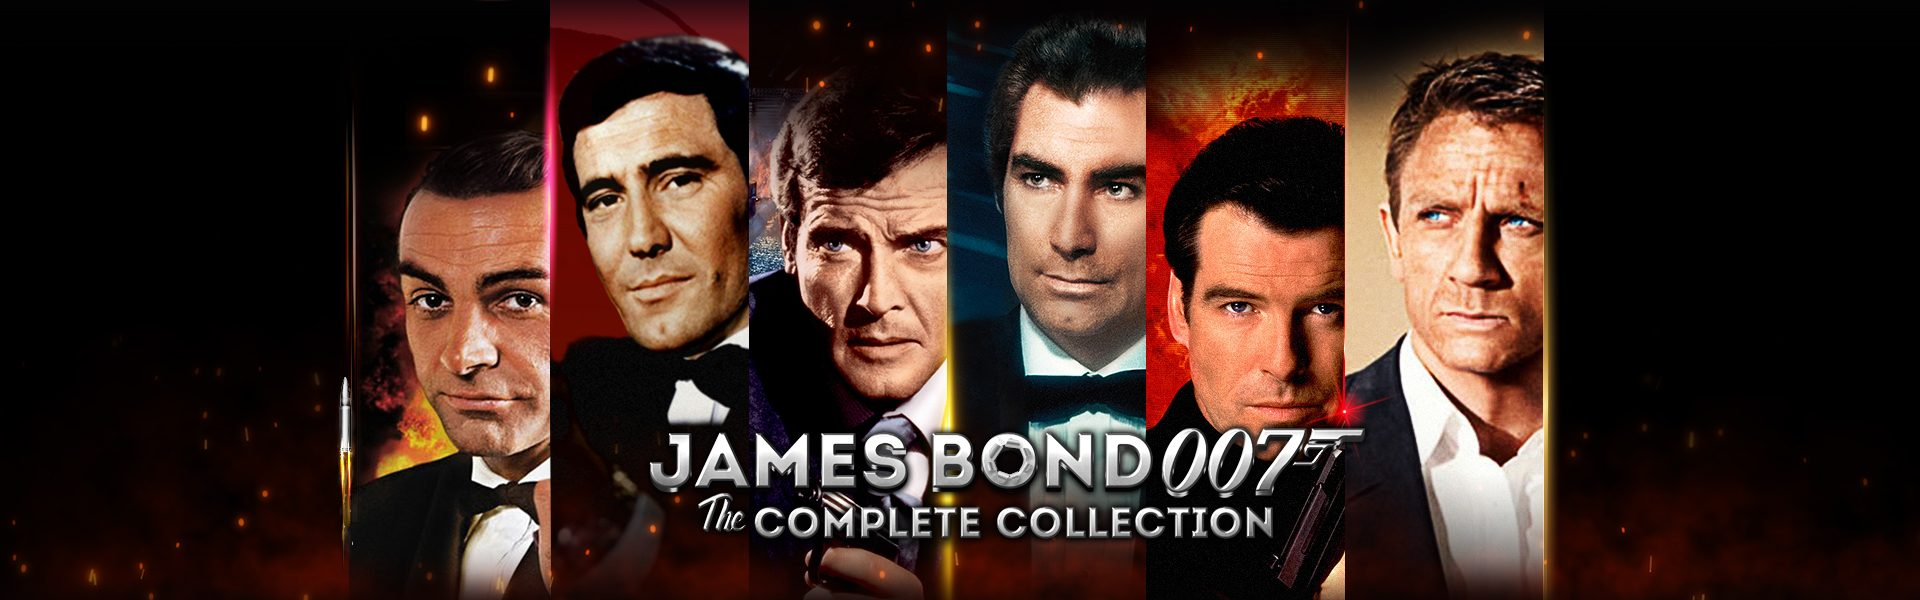 James Bond 007 The Complete Collection